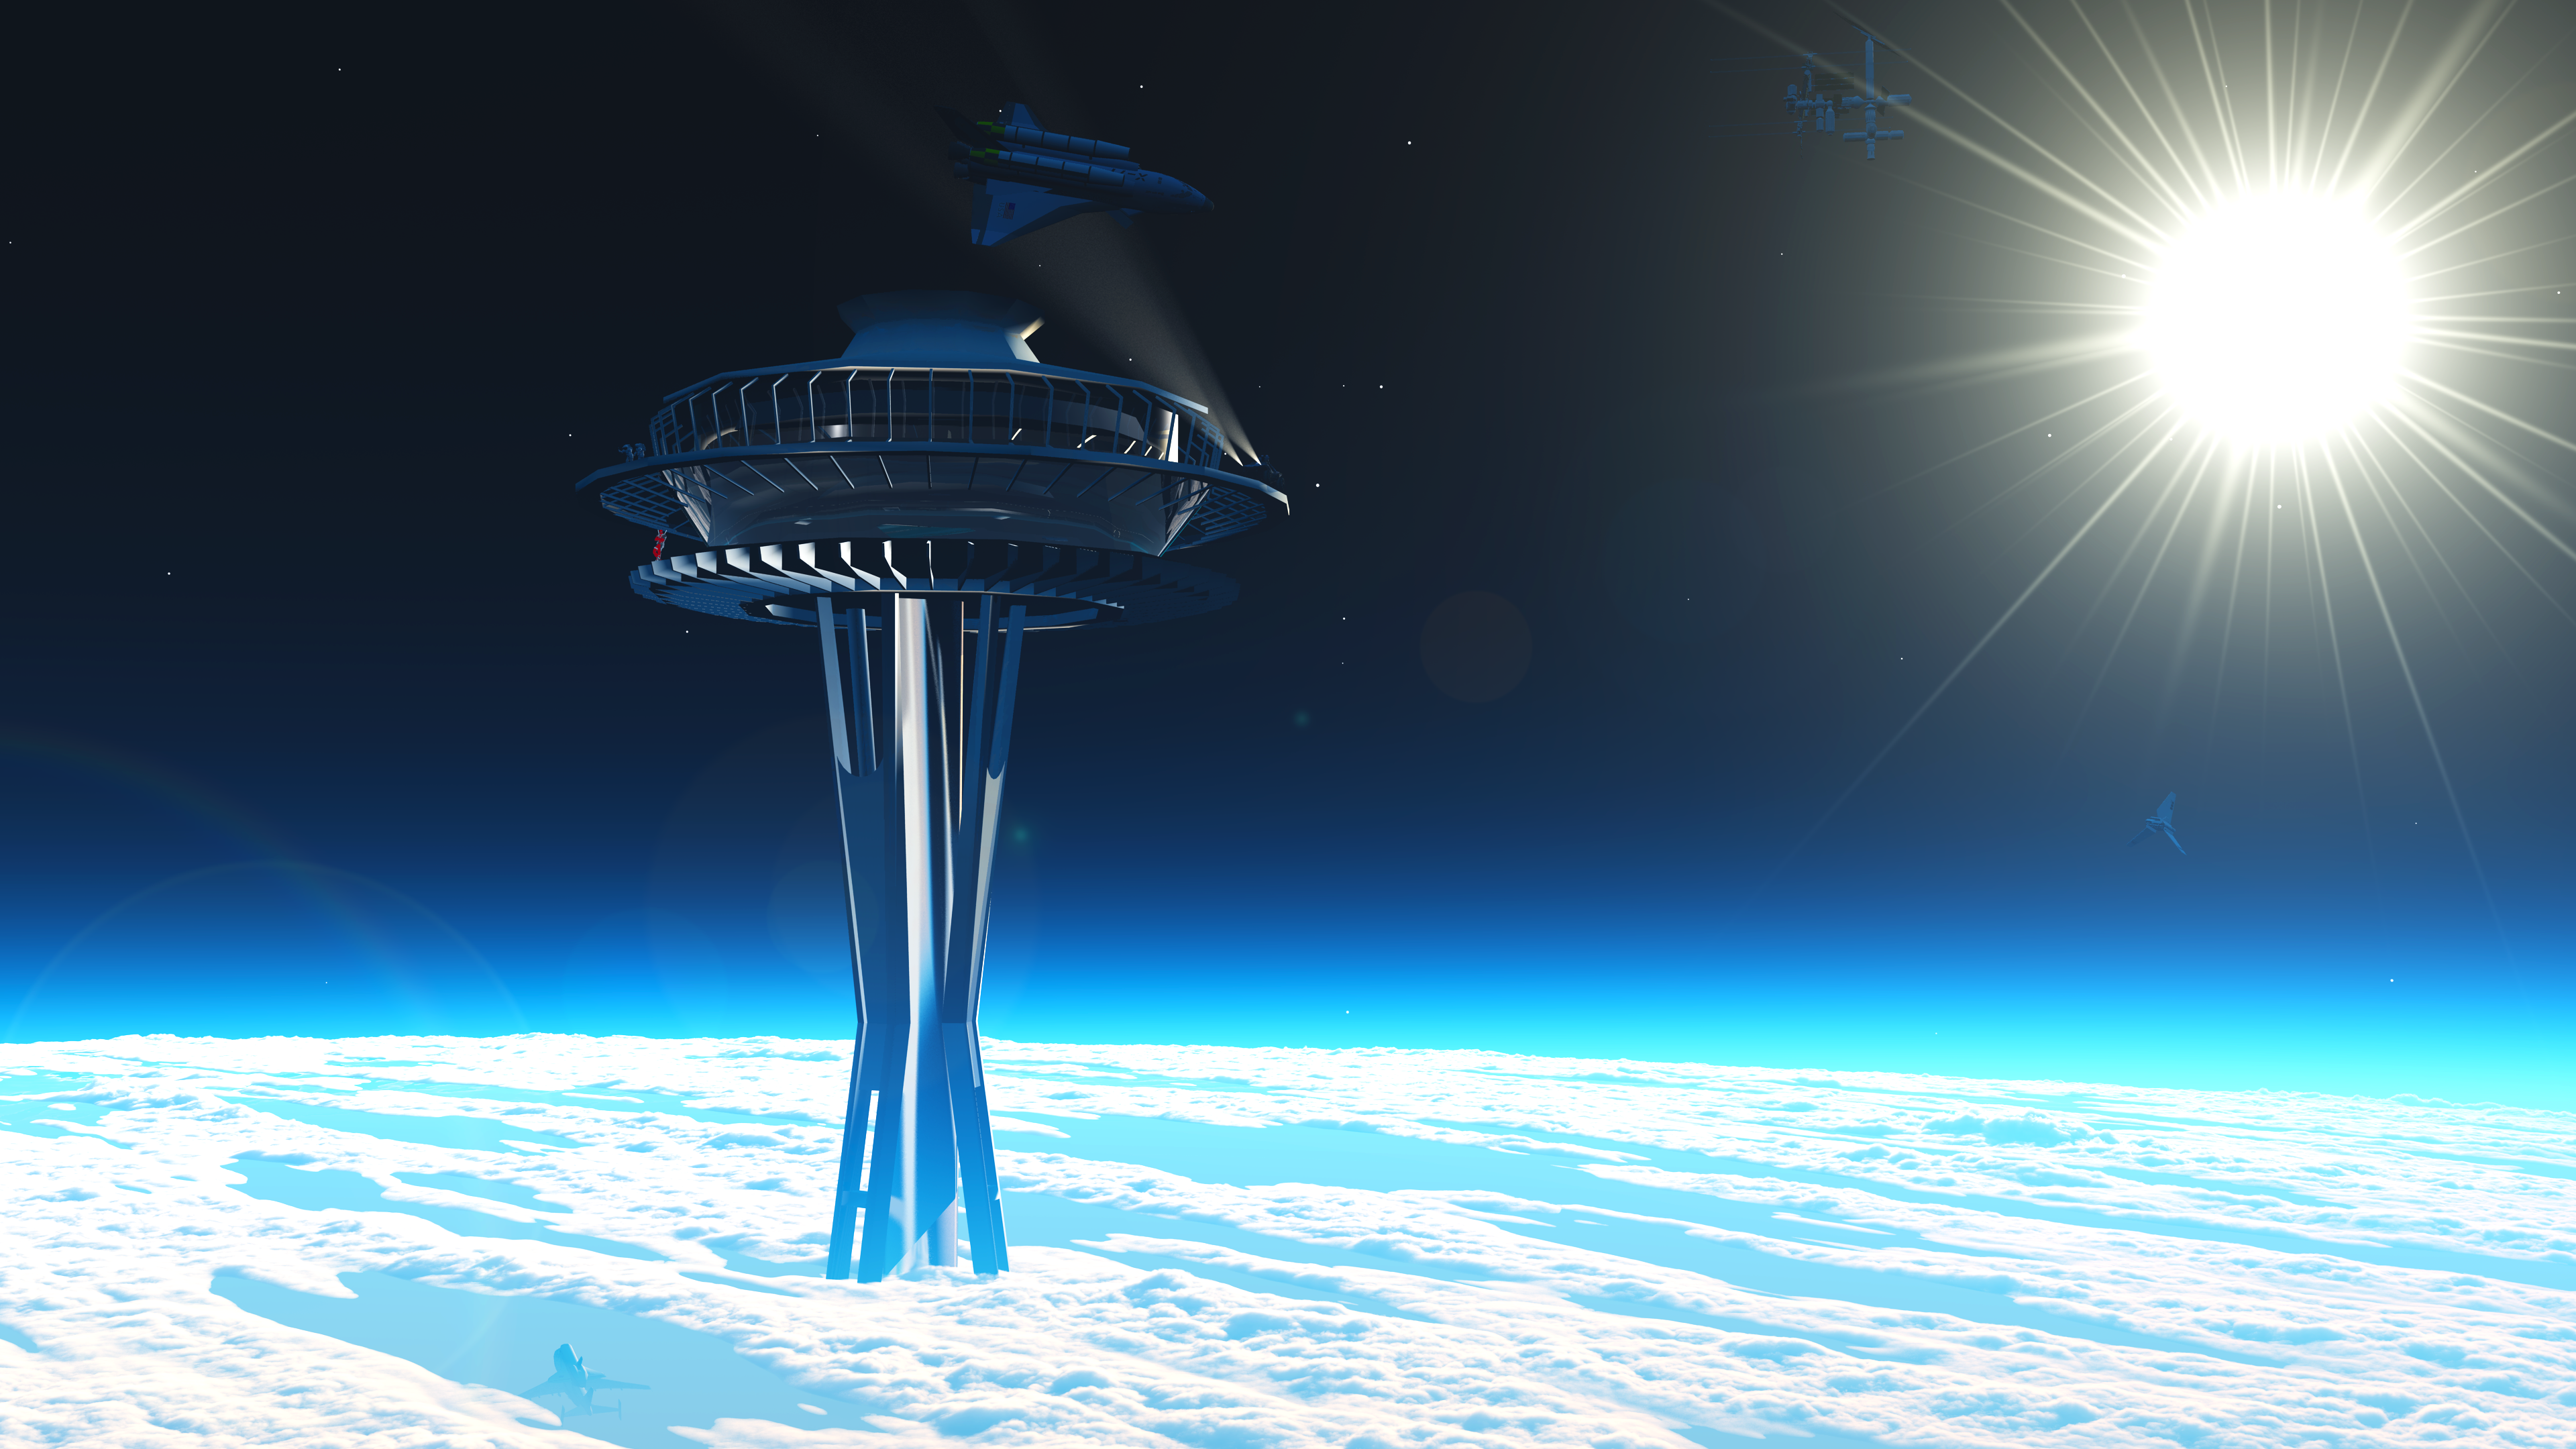 SpaceElevator_seattle_space_elevator_observatory_by_alterbr33d-d5j8j2p